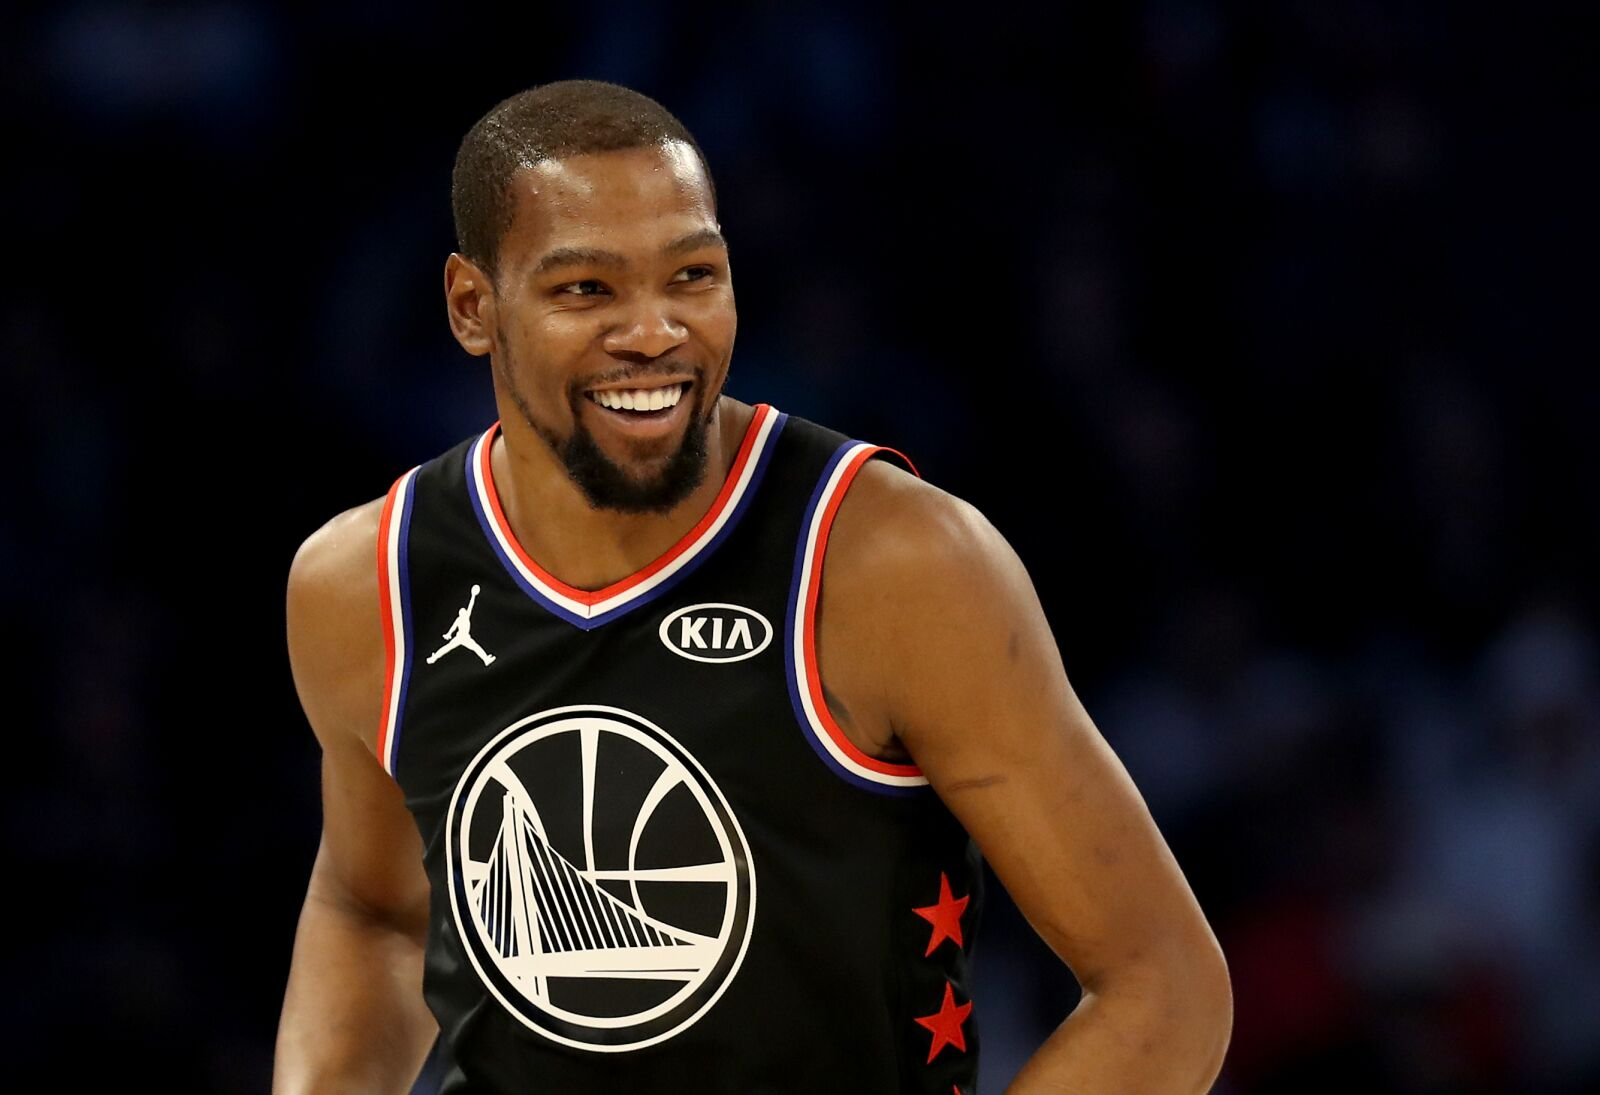 Team LeBron wins 2019 NBA All-Star Game, Kevin Durant wins MVP